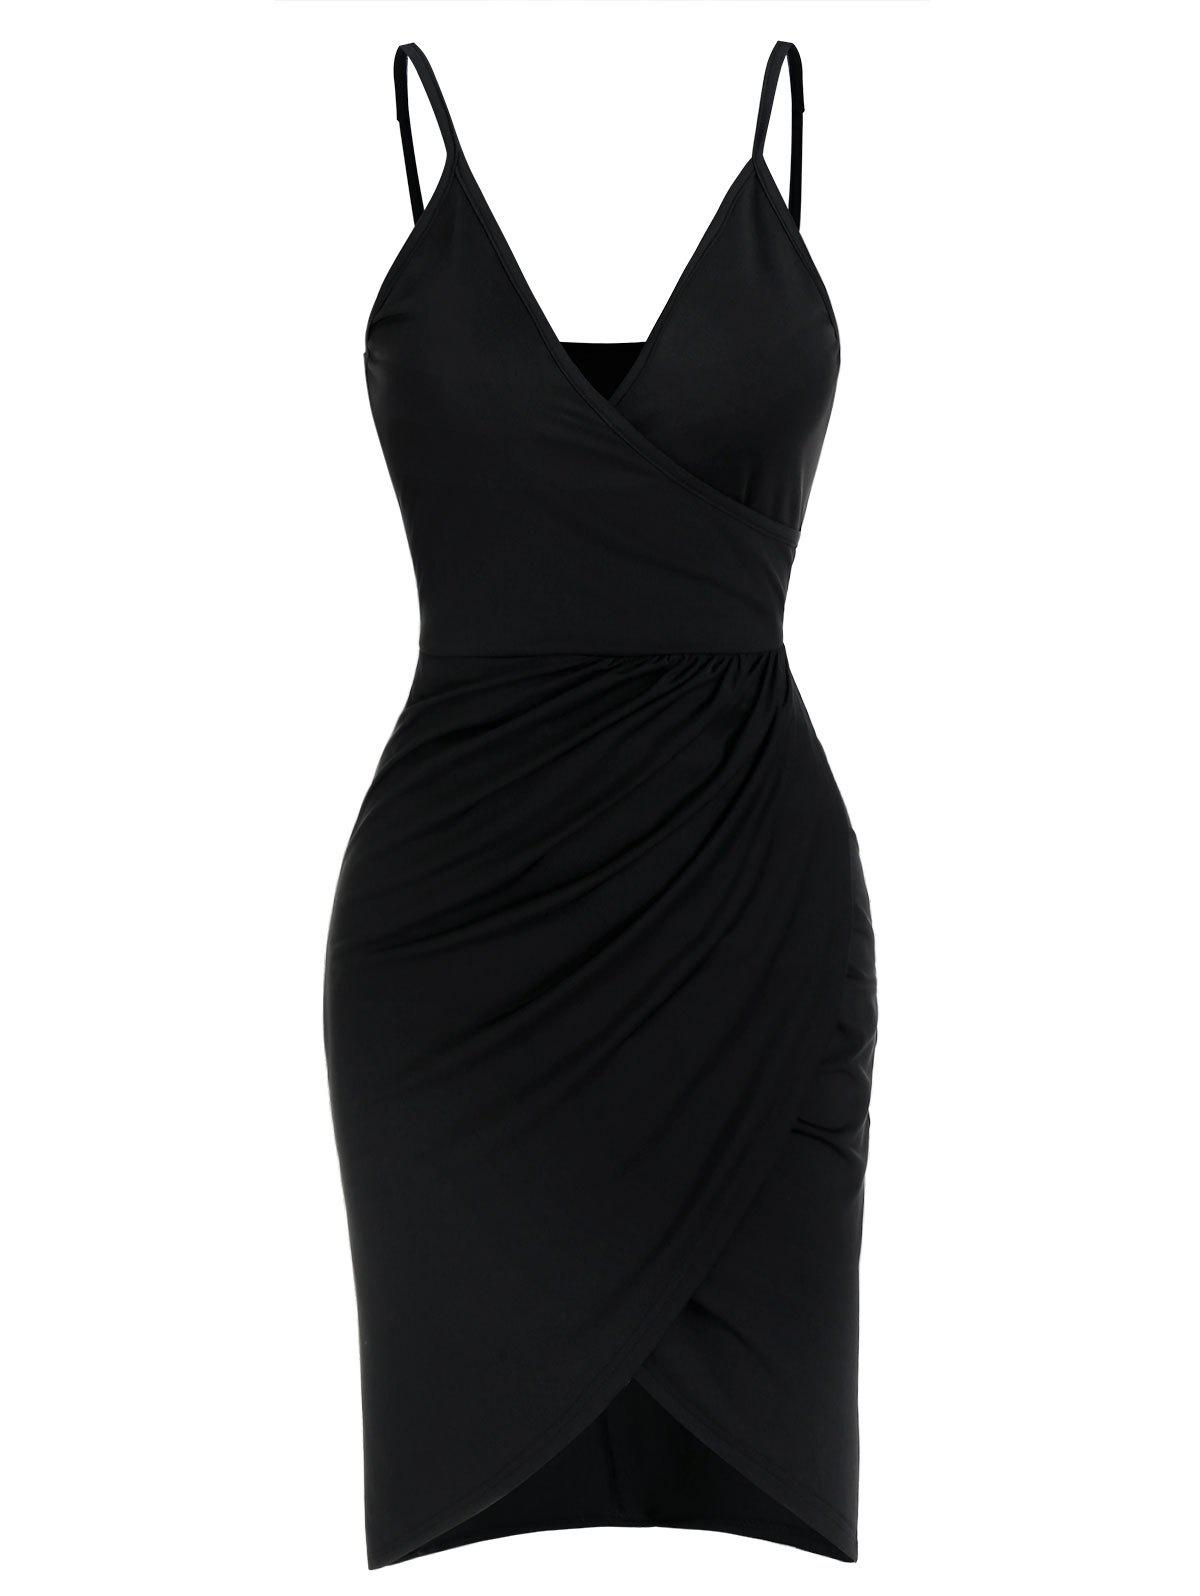 Draped Wrap Spaghetti Strap Dress - BLACK 3XL